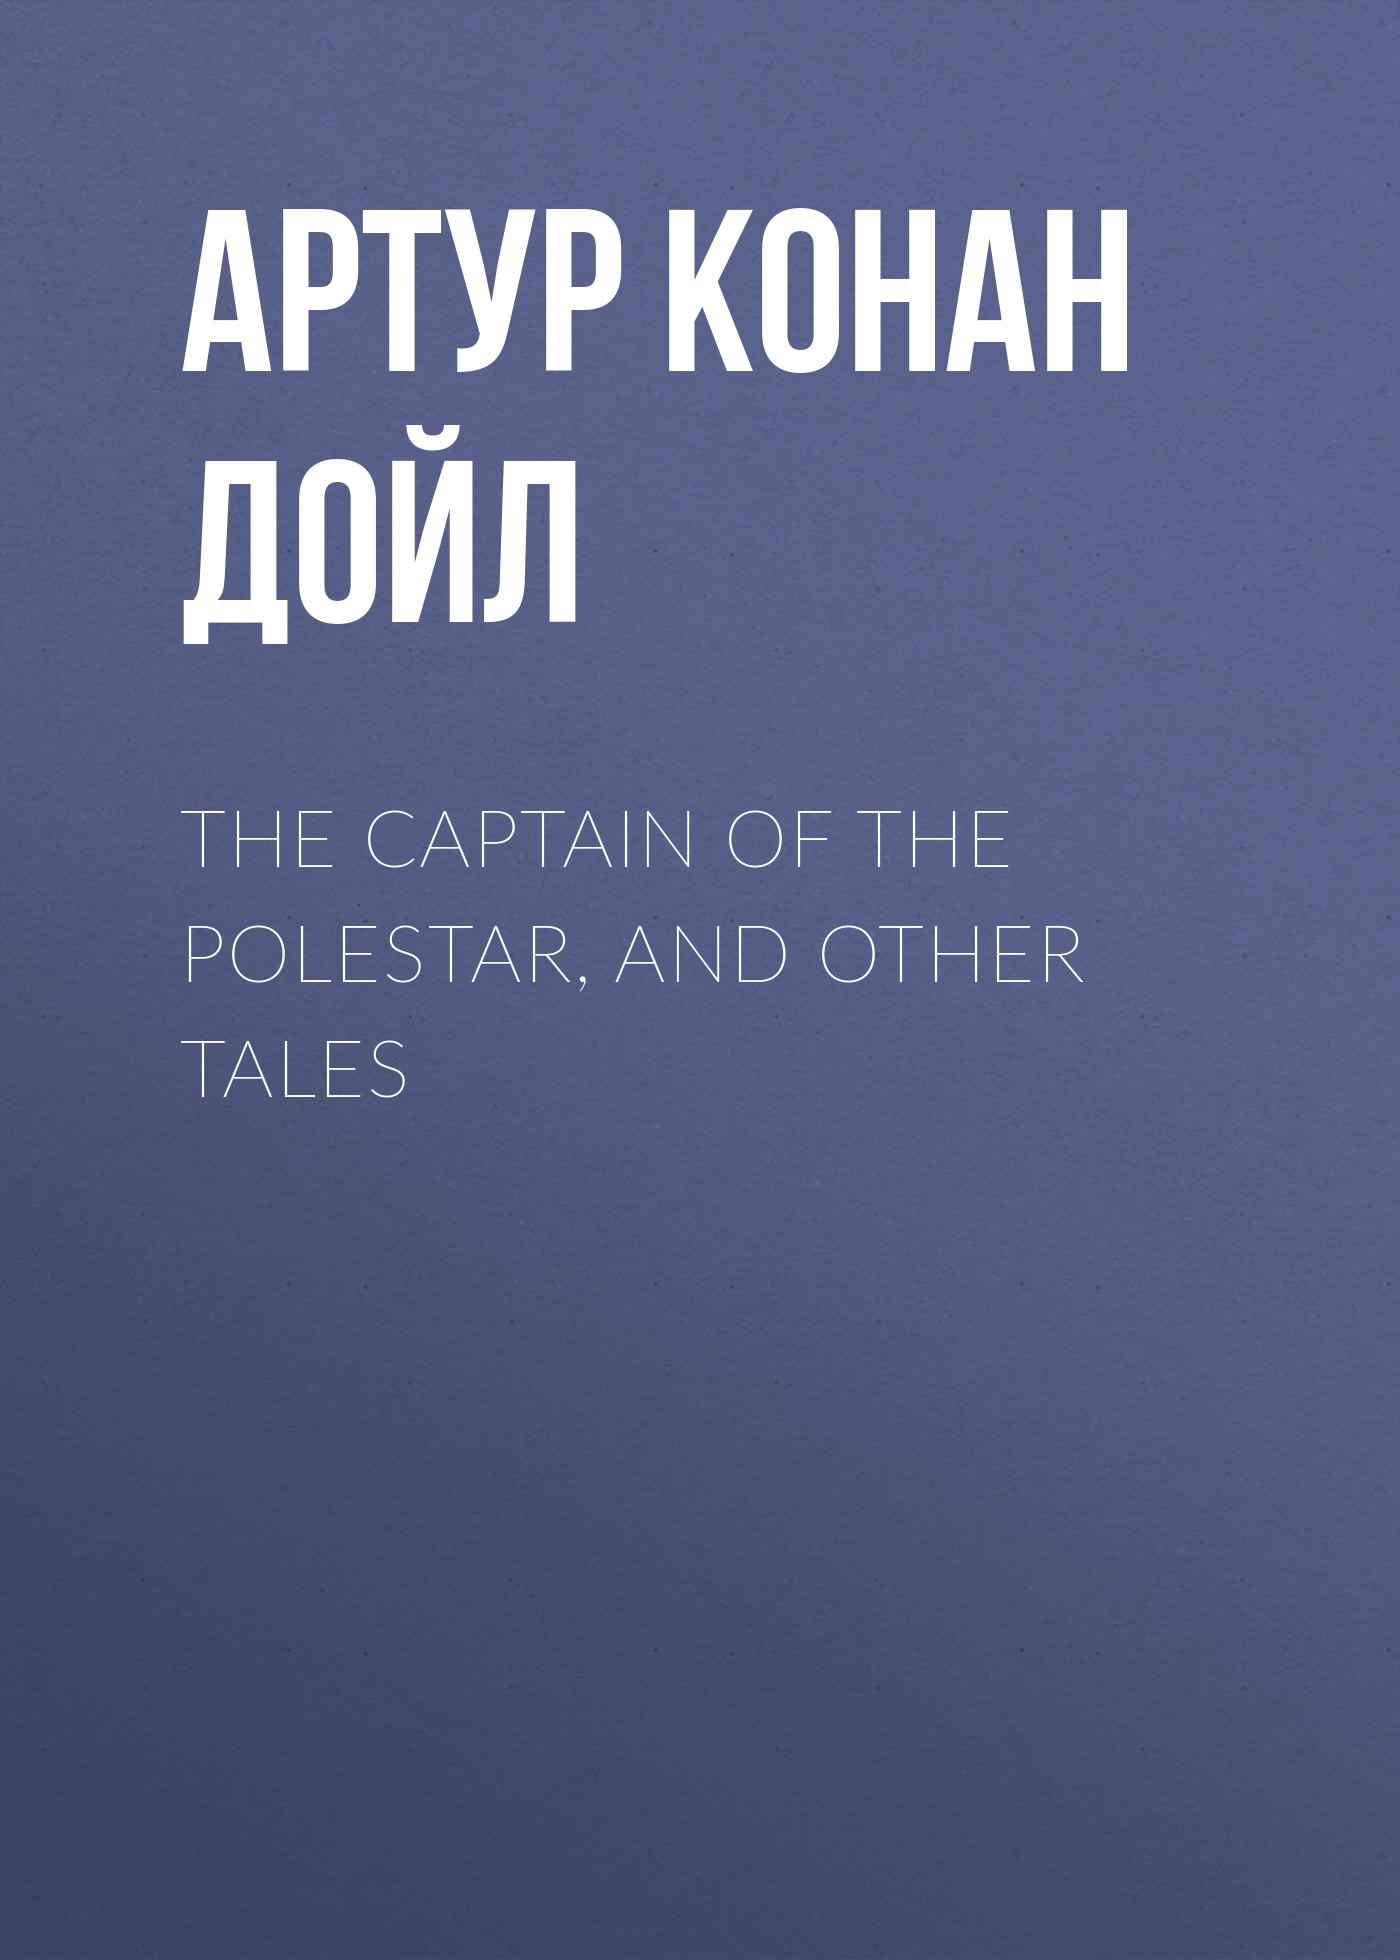 Артур Конан Дойл The Captain of the Polestar, and Other Tales arthur conan doyle the captain of the polestar and other tales isbn 978 5 521 07166 1